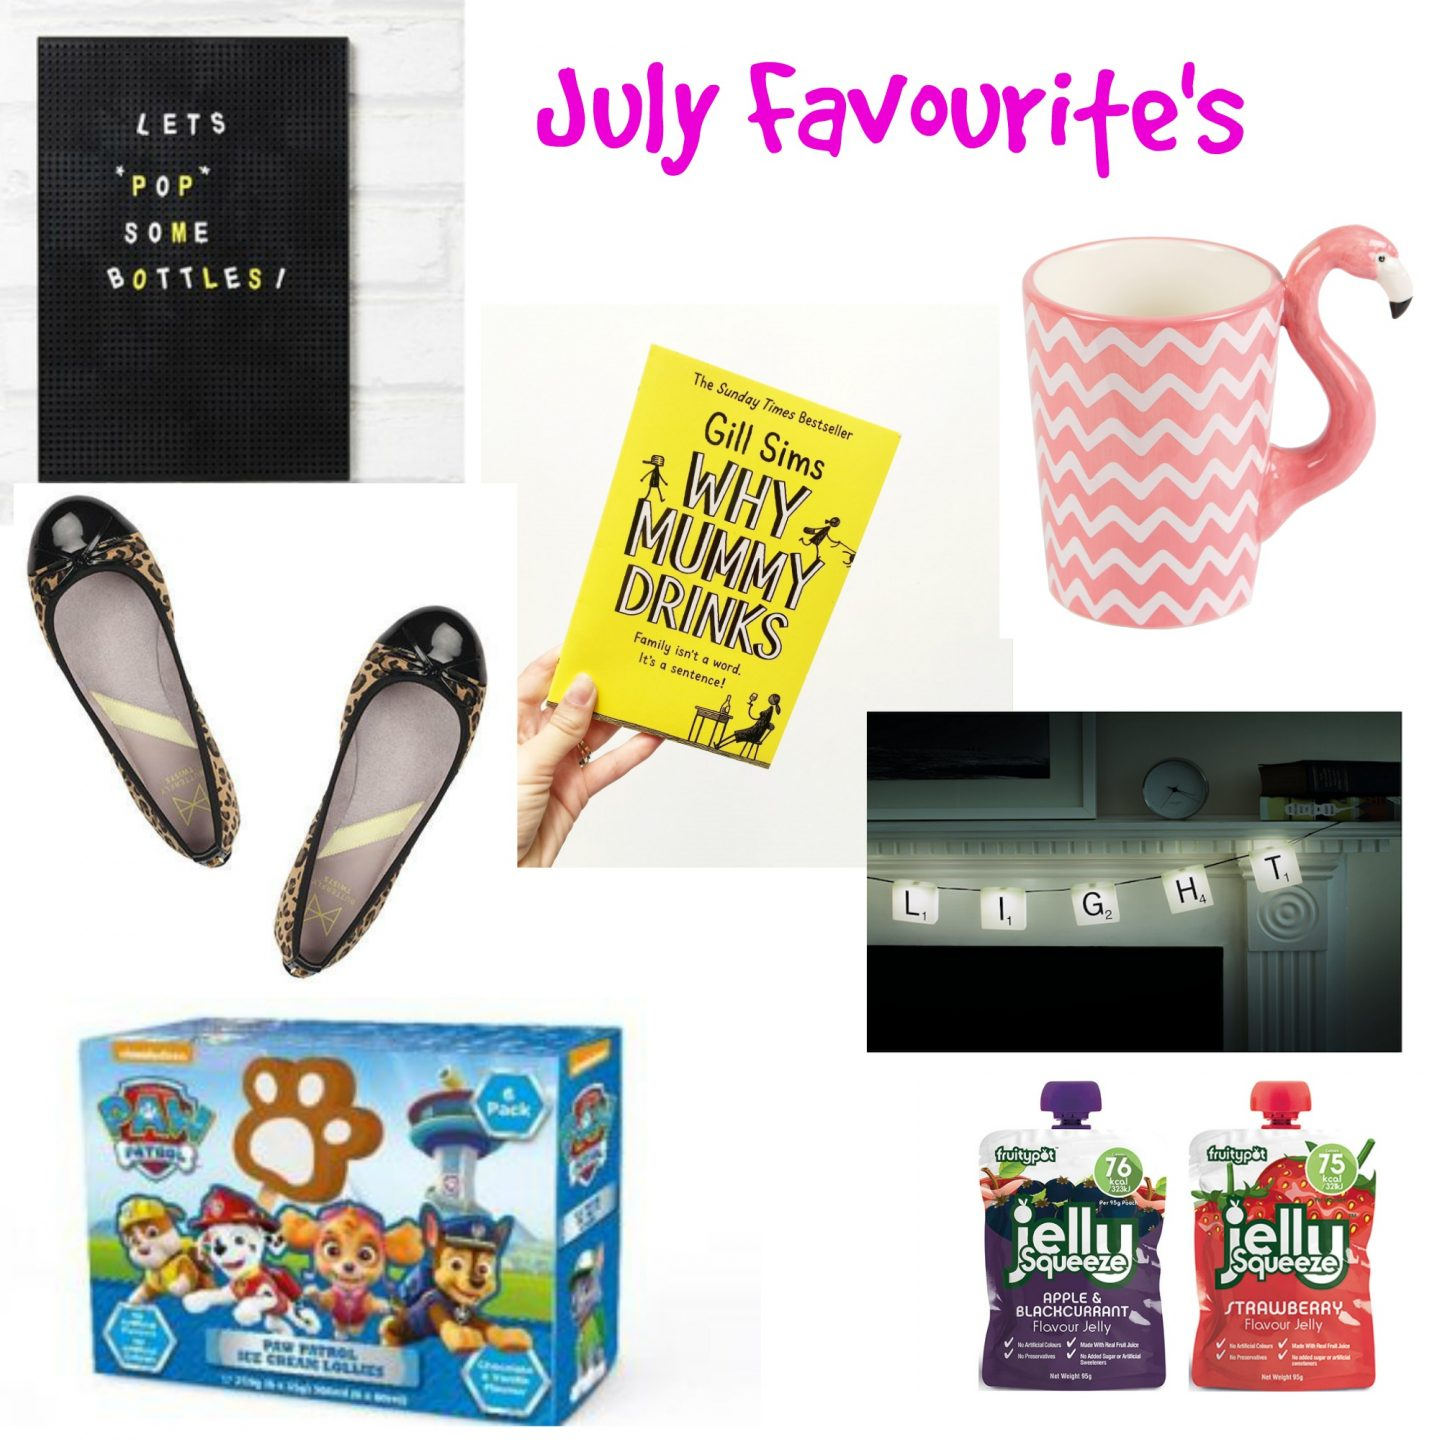 July Favourite's